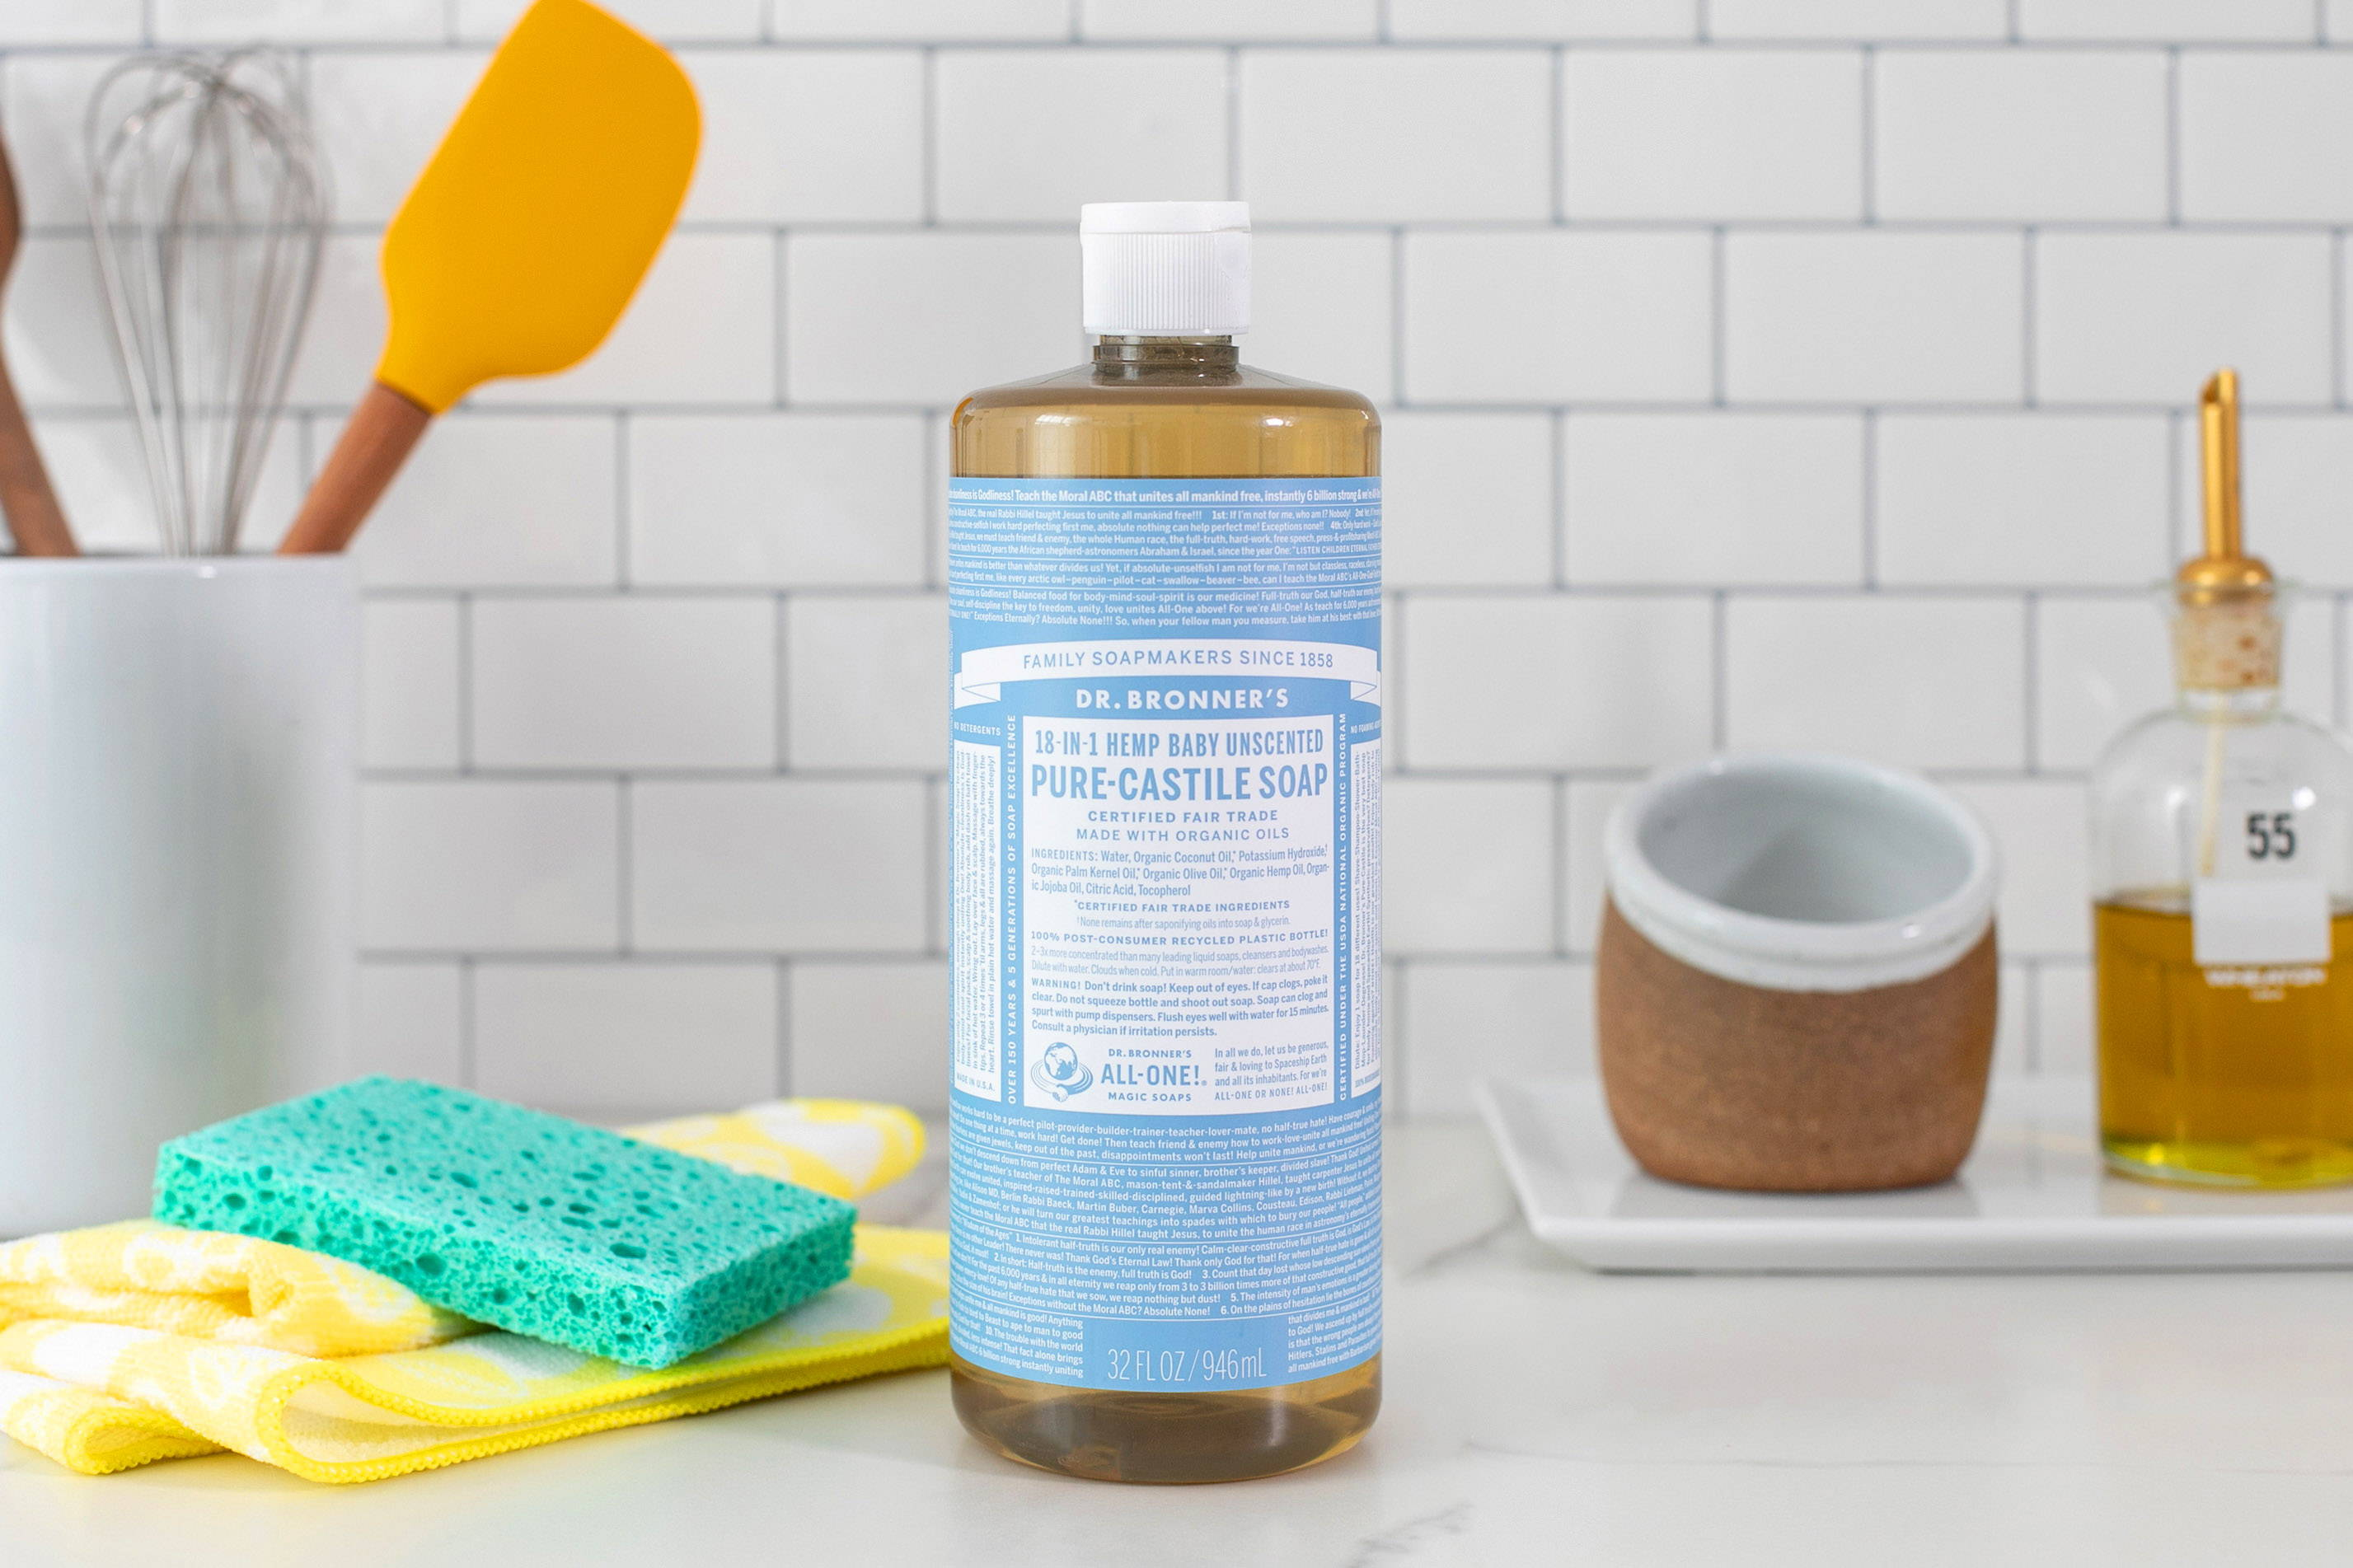 Liquid castile soap  is great as an all-purpose surface cleaner, floor cleaner, or for use as an all-natural dish soap